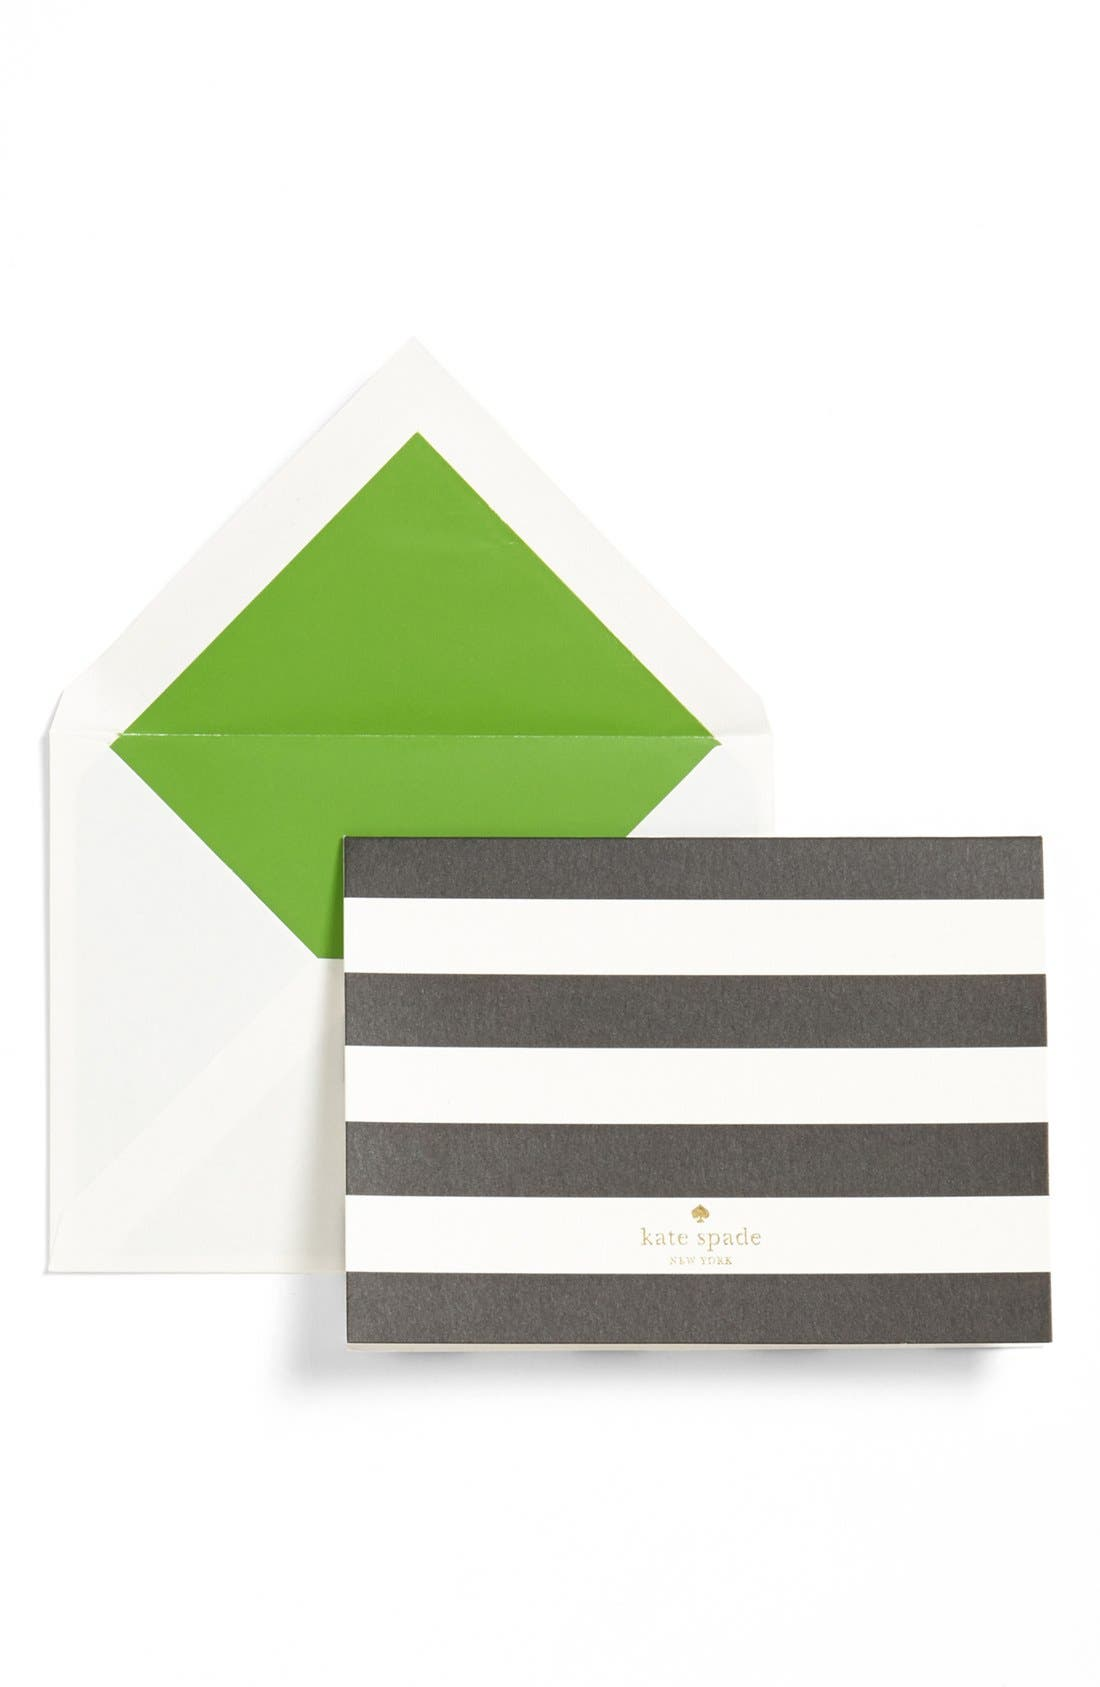 Alternate Image 1 Selected - kate spade new york 'polka dot' note cards (Set of 10)